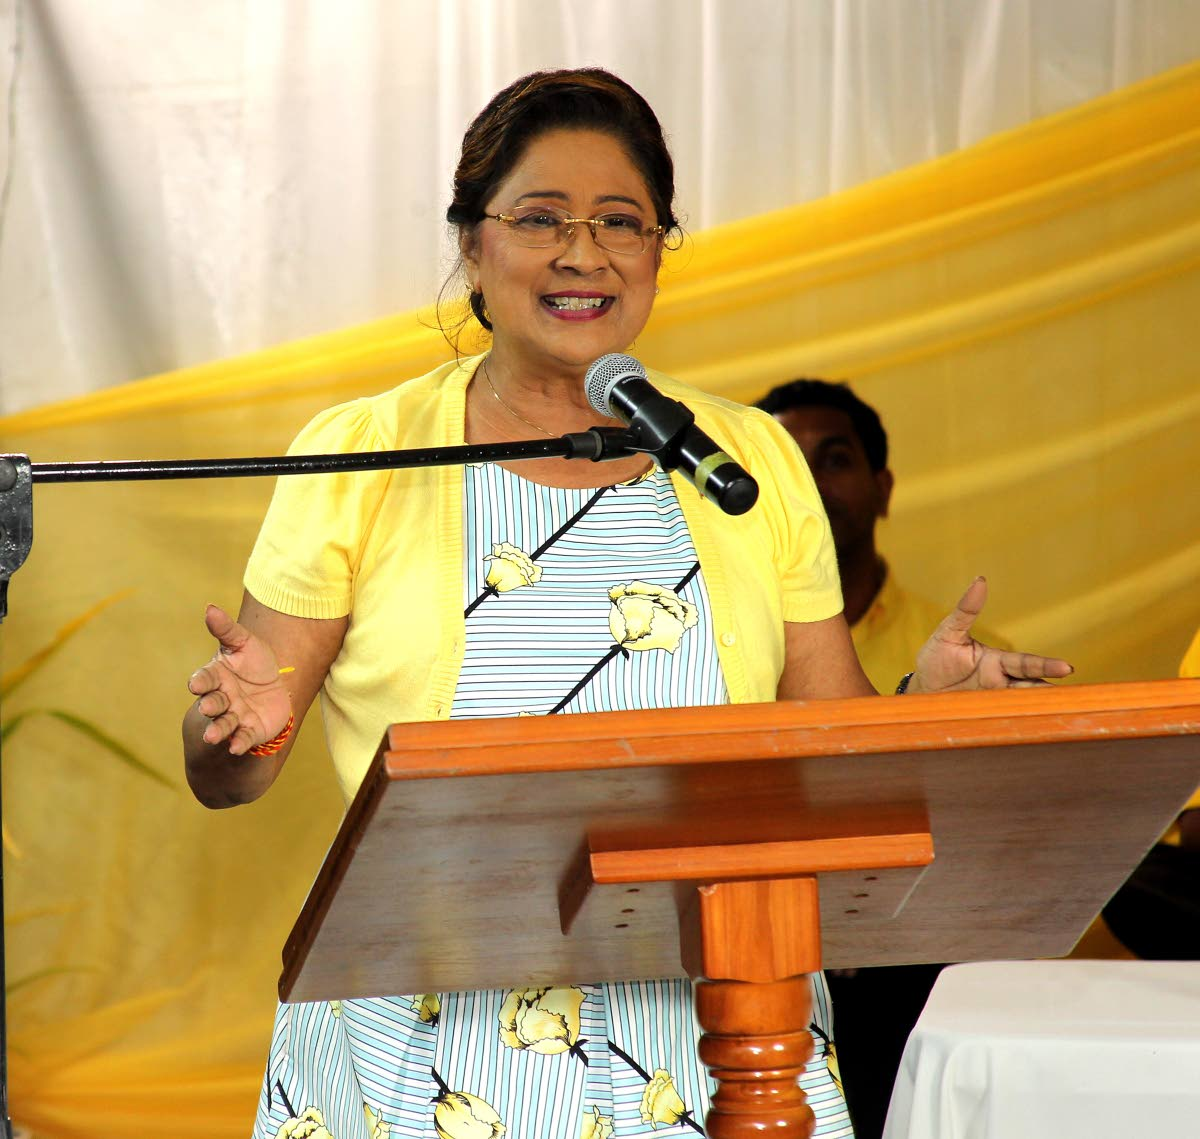 Political leader of the United National Congress, Kamla Persad-Bissessar, speaking at a cottage meeting ahead of the UNC's internal election on November 26. PHOTO BY LINCOLN HOLDER.